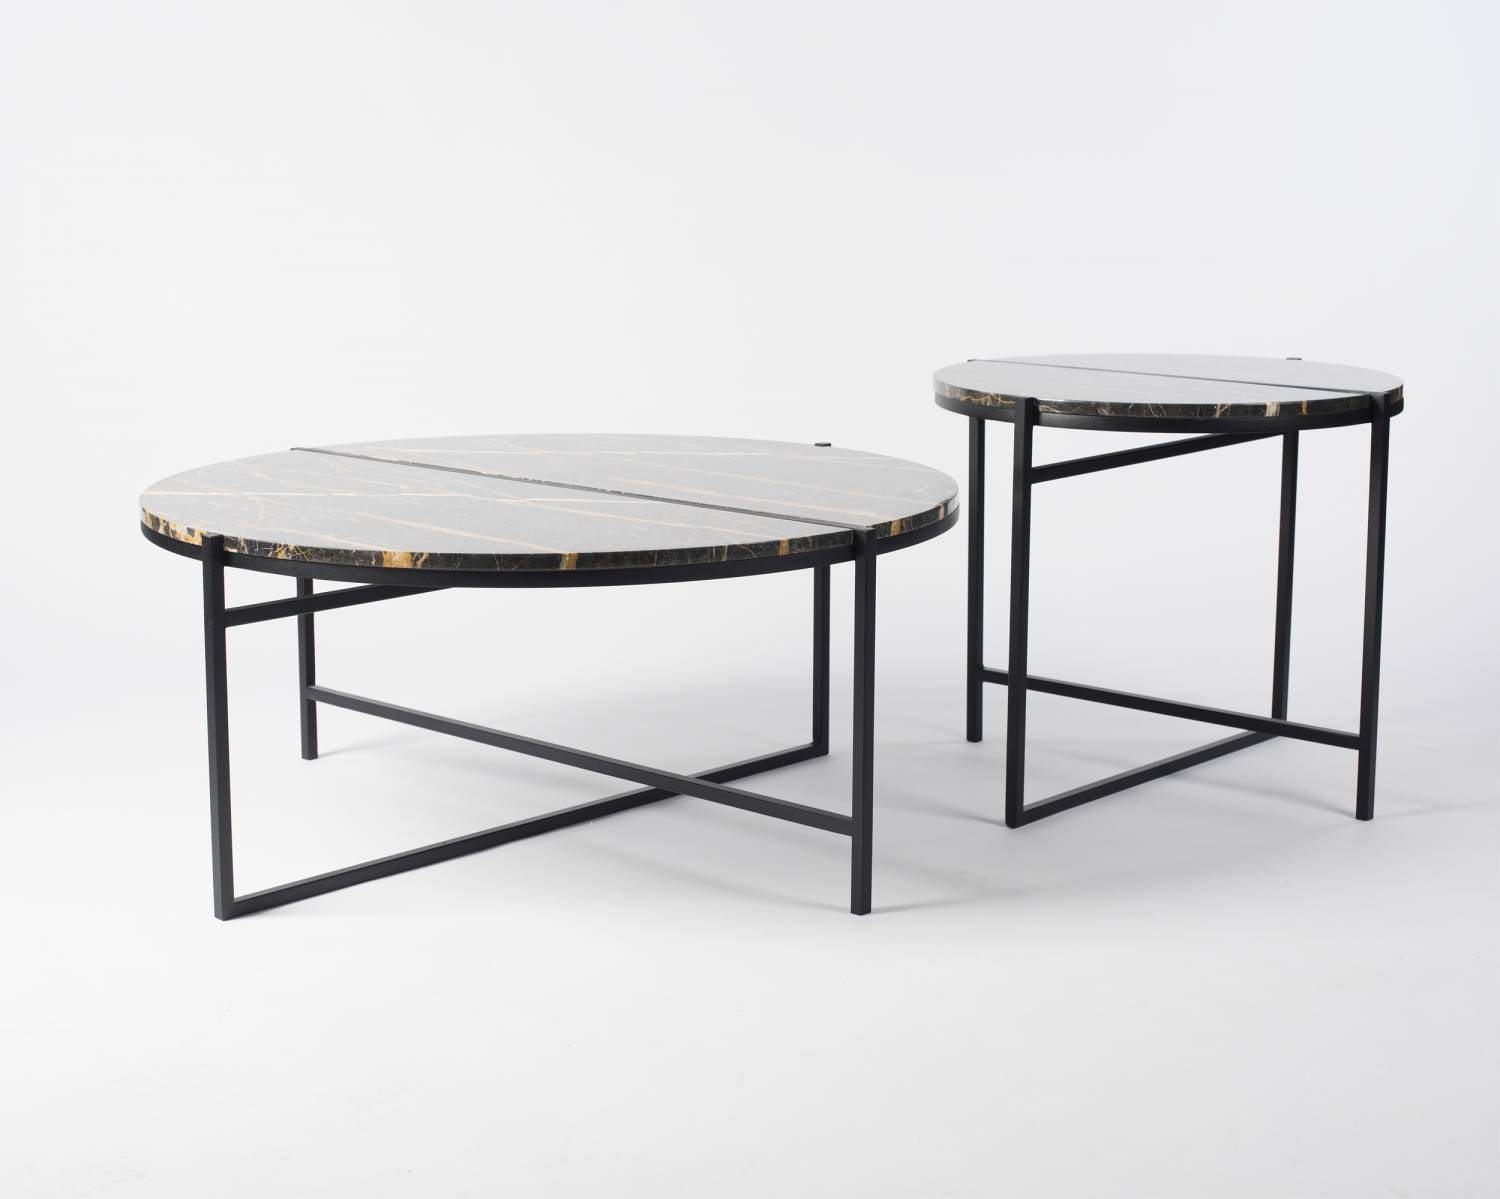 Other Way Round table by Isabell Gatzen | Flodeau.com